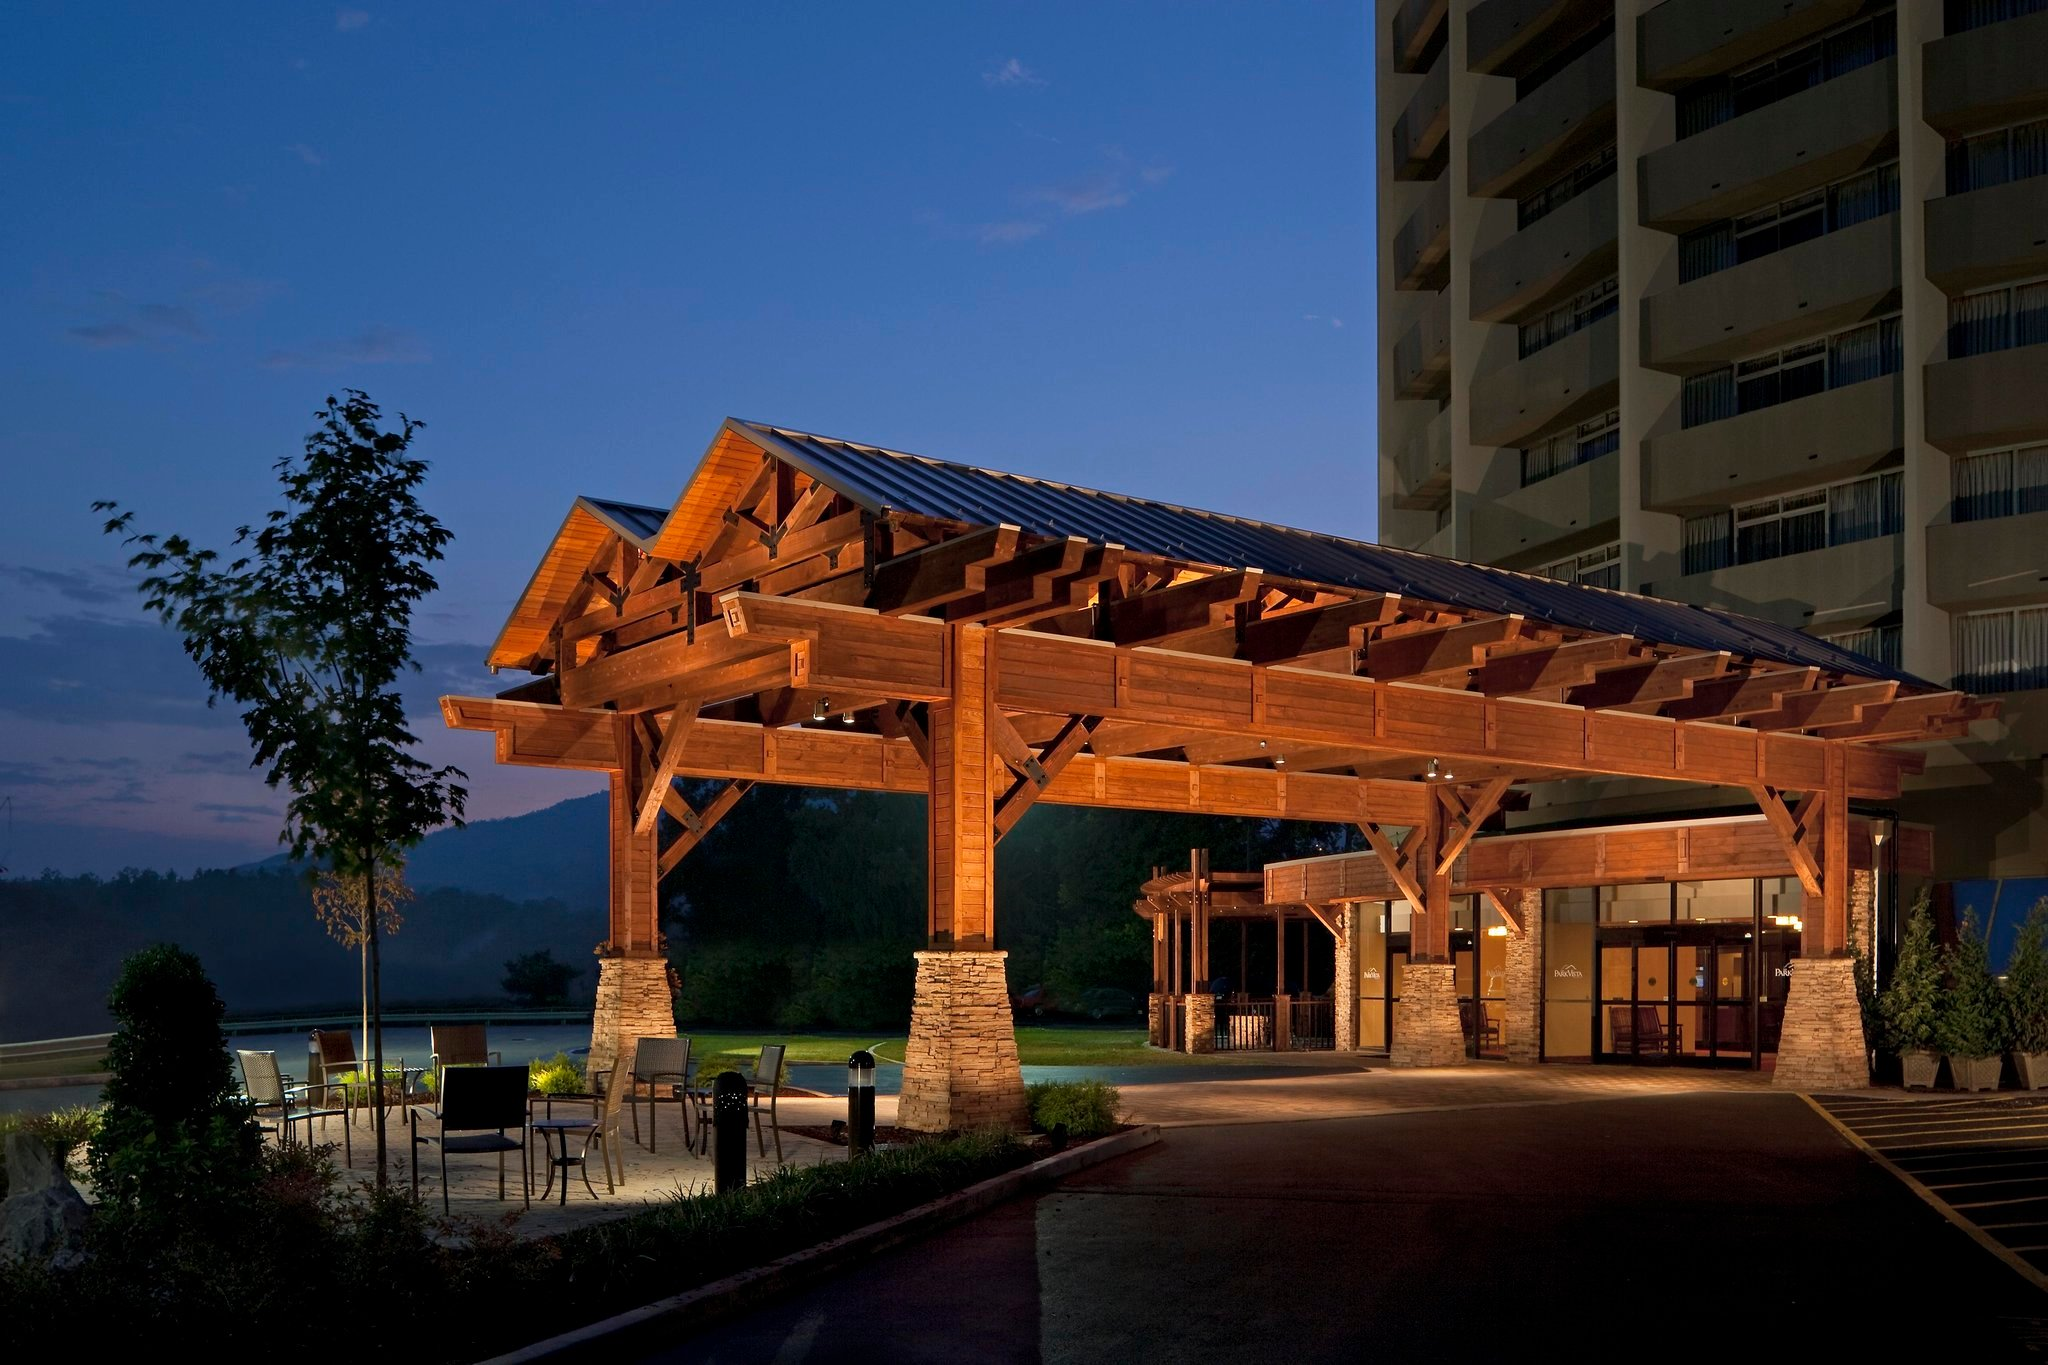 Park Vista - DoubleTree by Hilton Hotel - Gatlinburg - TEMPORARILY CLOSED